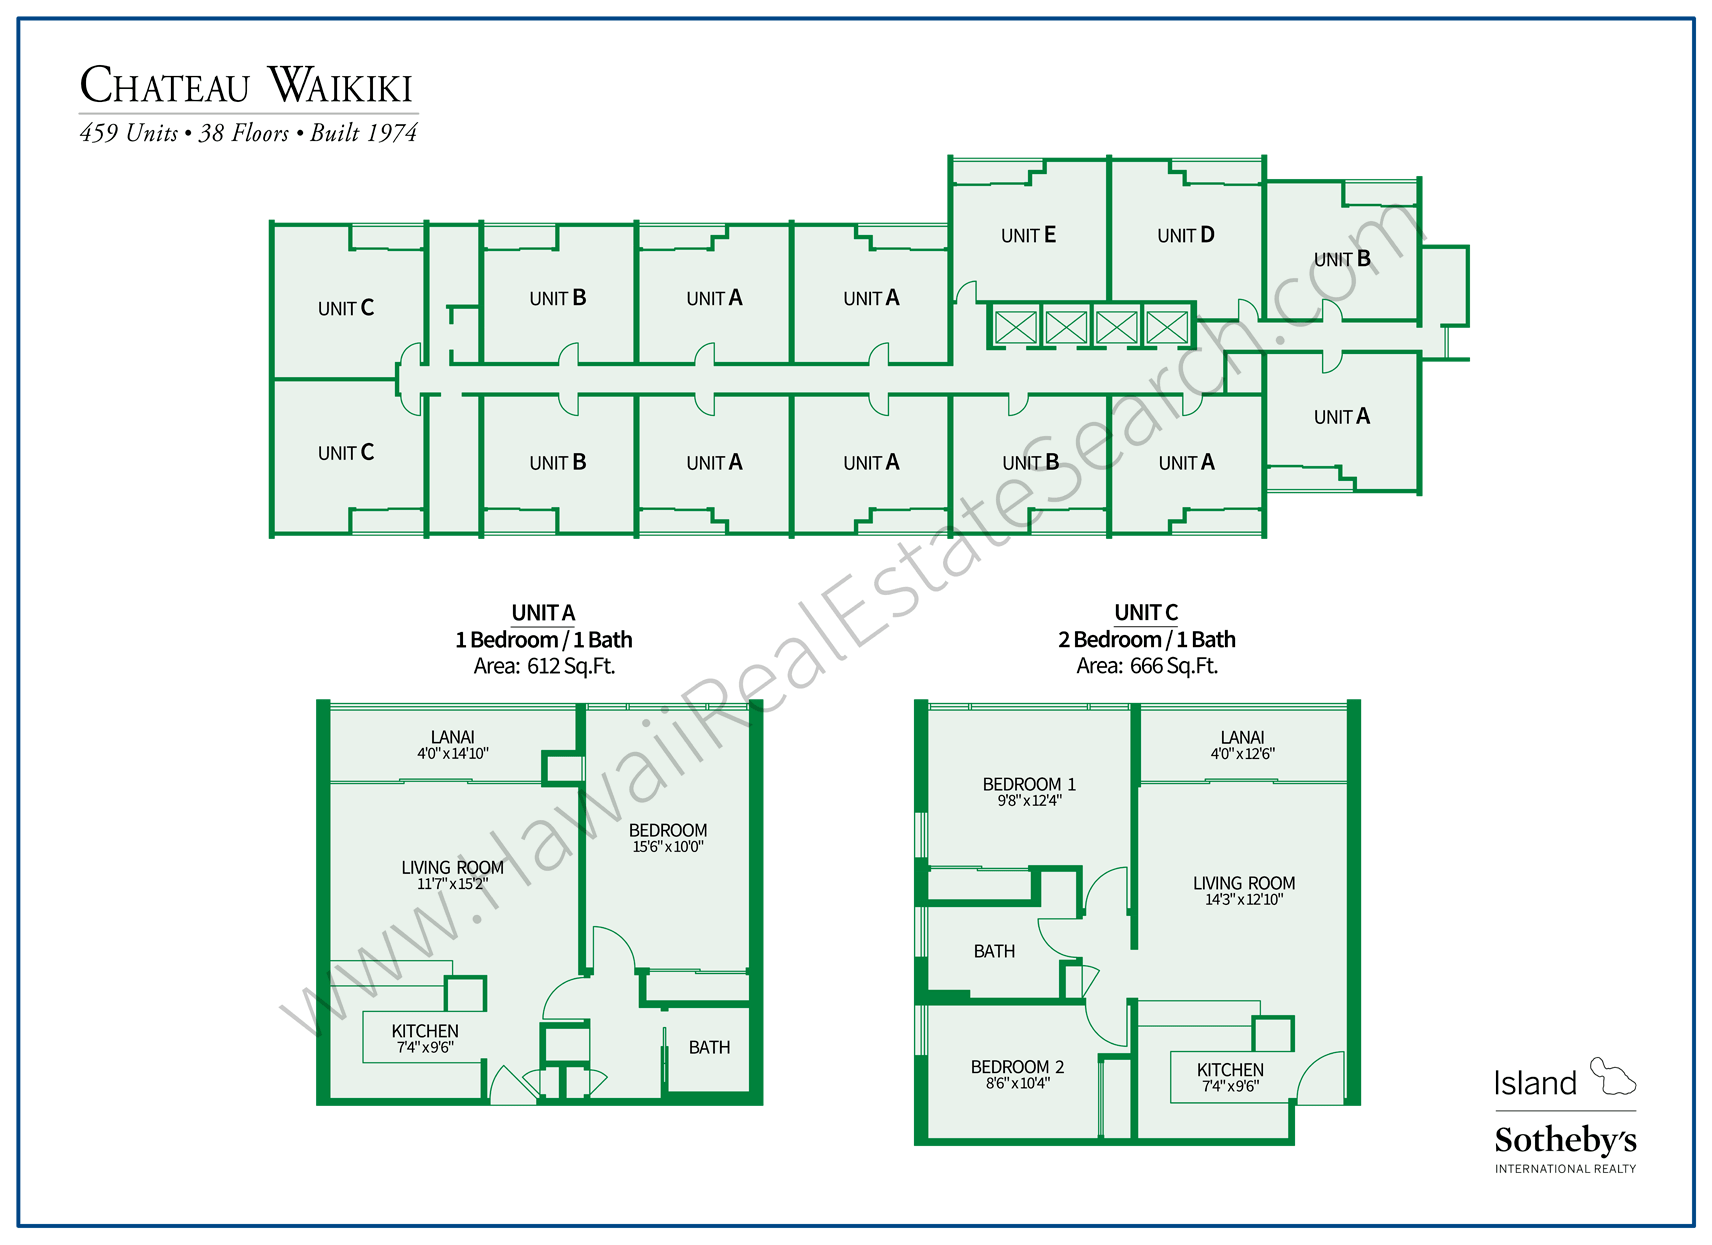 Chateau Waikiki Property Map and Floor Plans